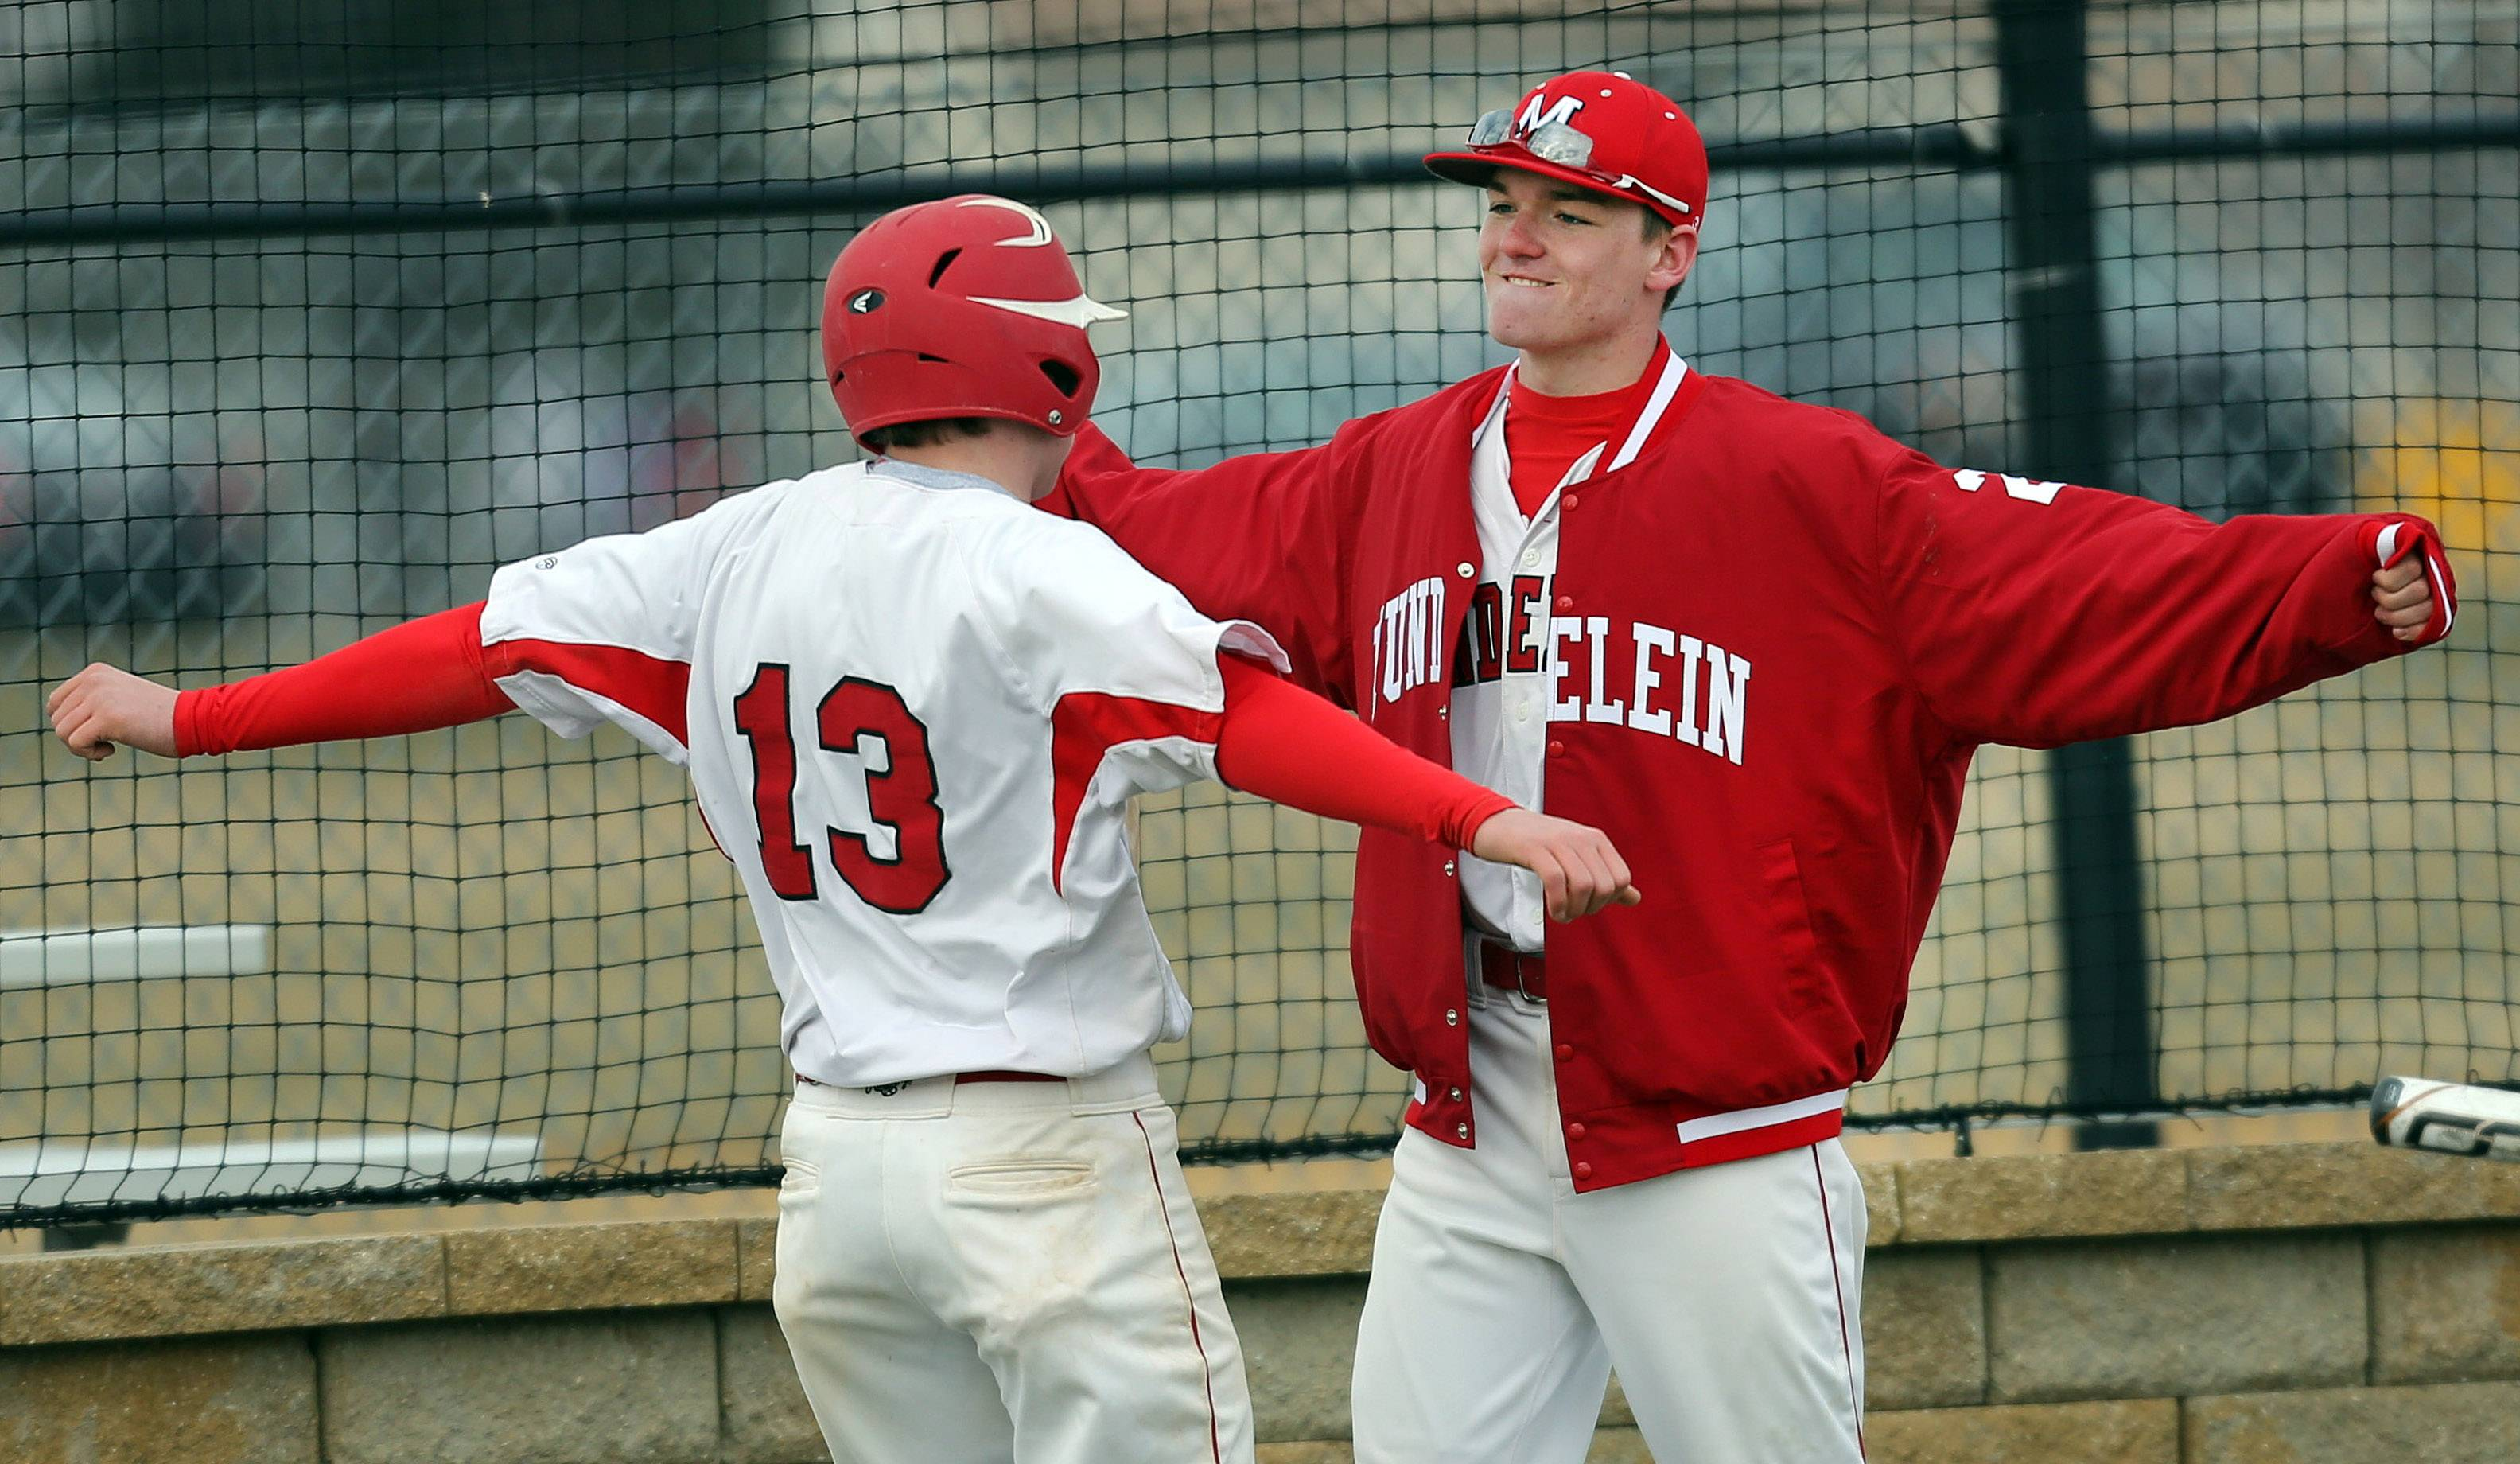 Mundelein's Luke Peterson, left and Luke Adams bump chests after Petersen scored against Wheeling on Wednesday at Mundelein.